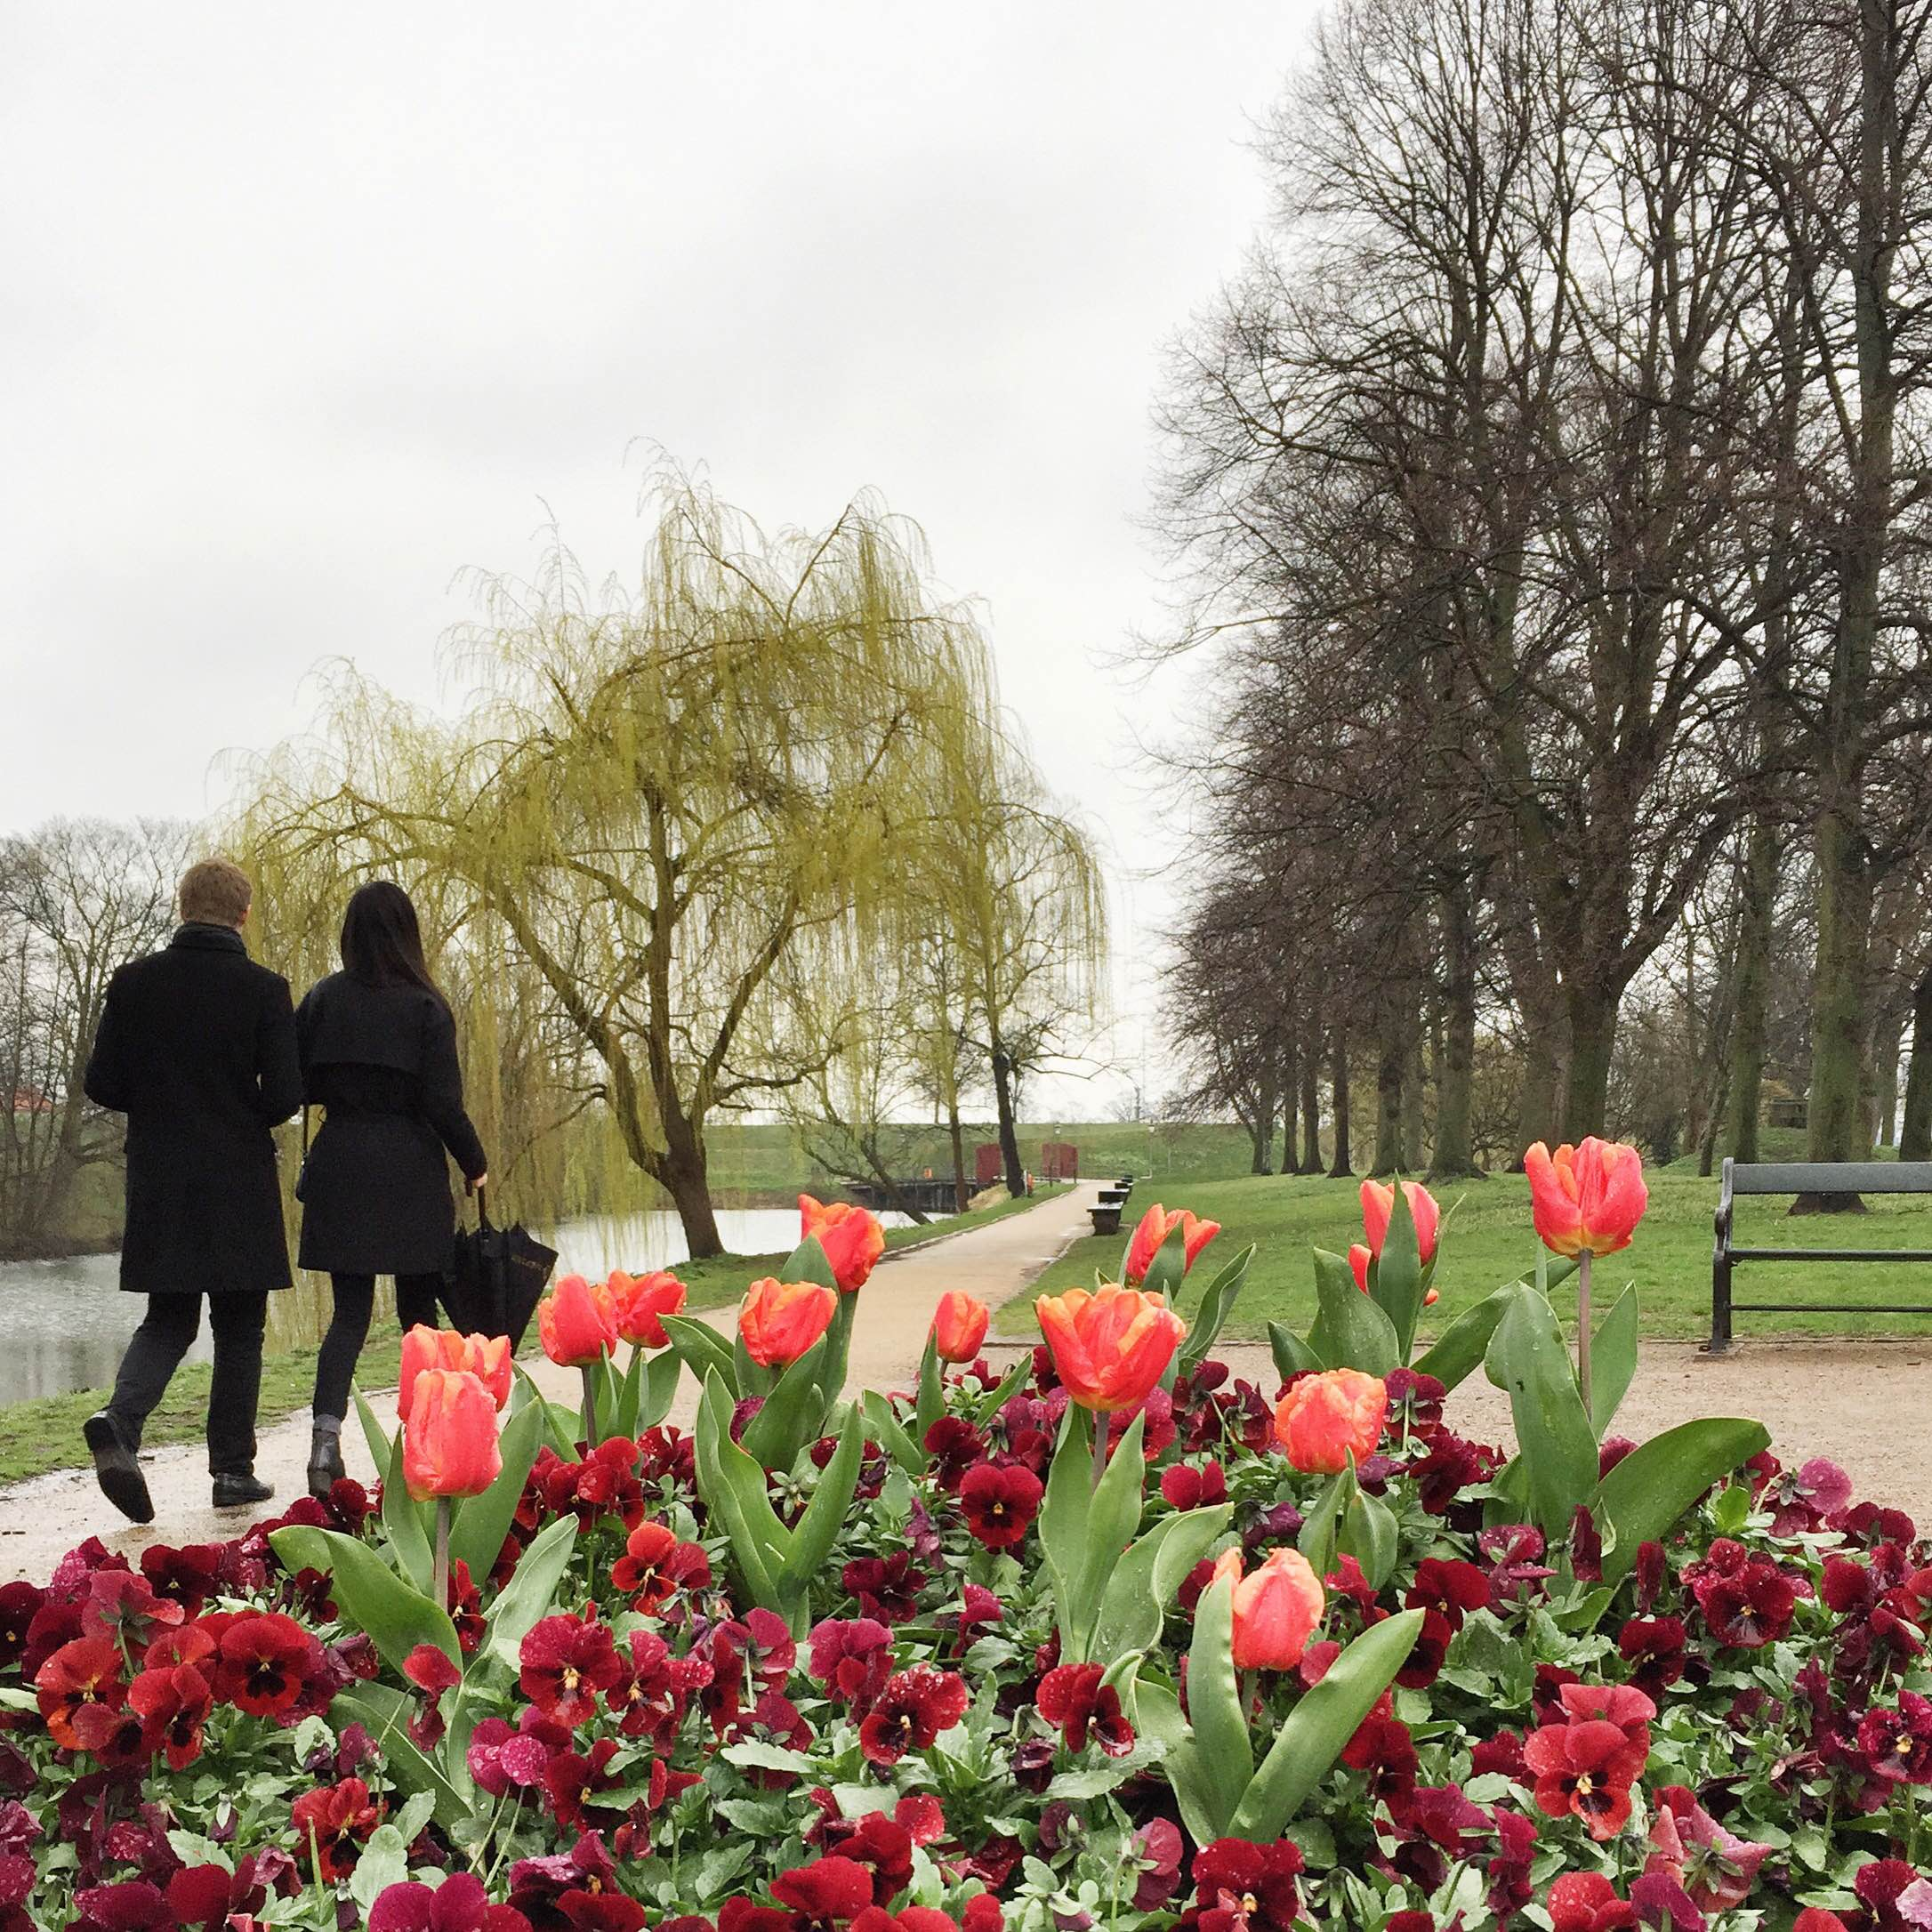 Red tulips, people walking in a garden